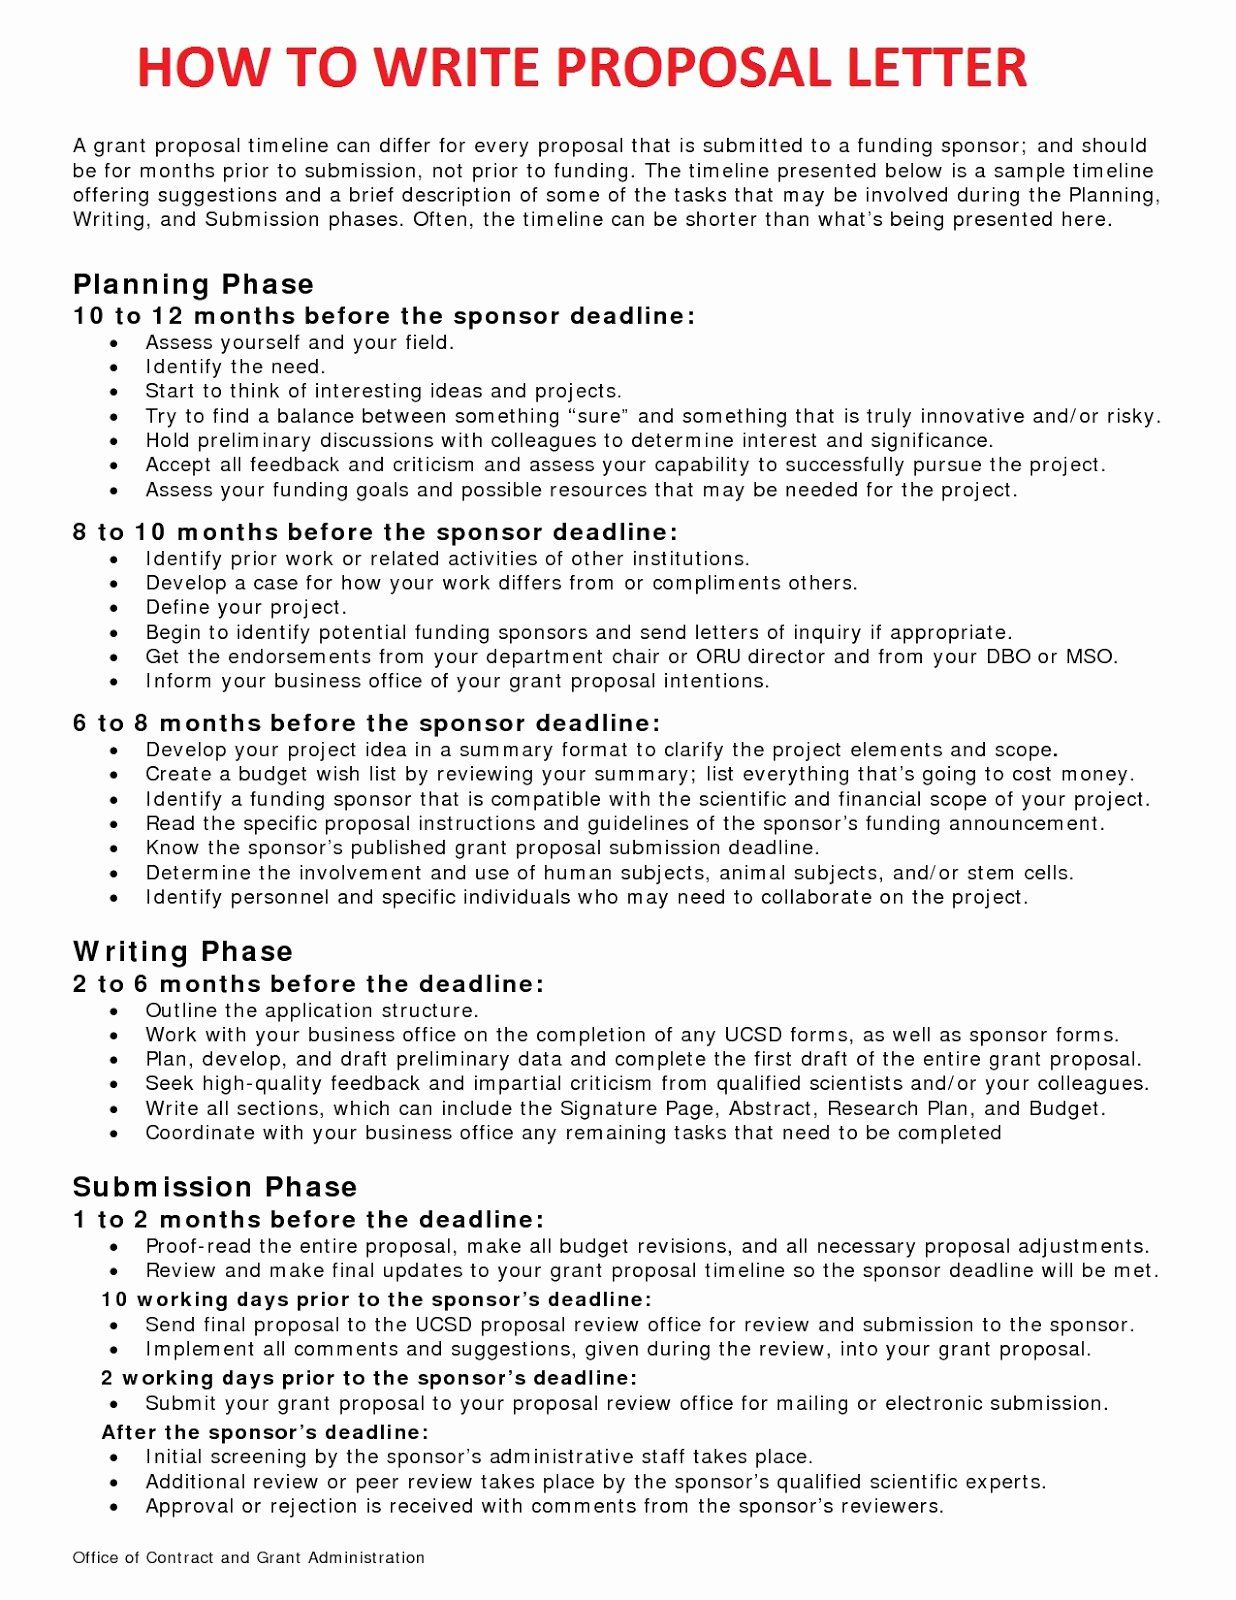 Writing A Business Proposal Template Fresh Business Letter Sample November 2012 Proposal Writing Writing A Business Proposal Grant Proposal Writing